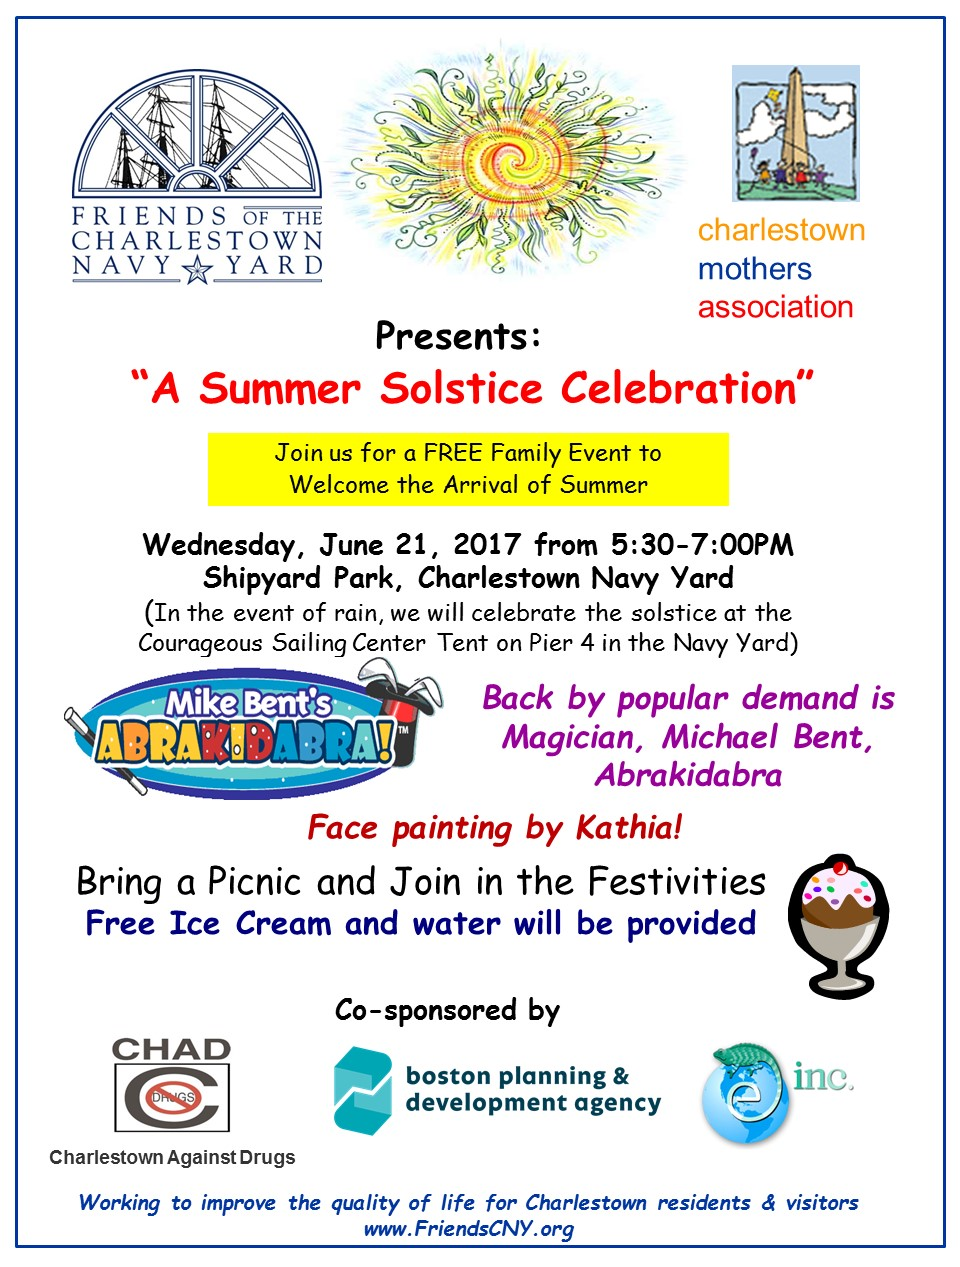 2017 Summer Solstice Celebration